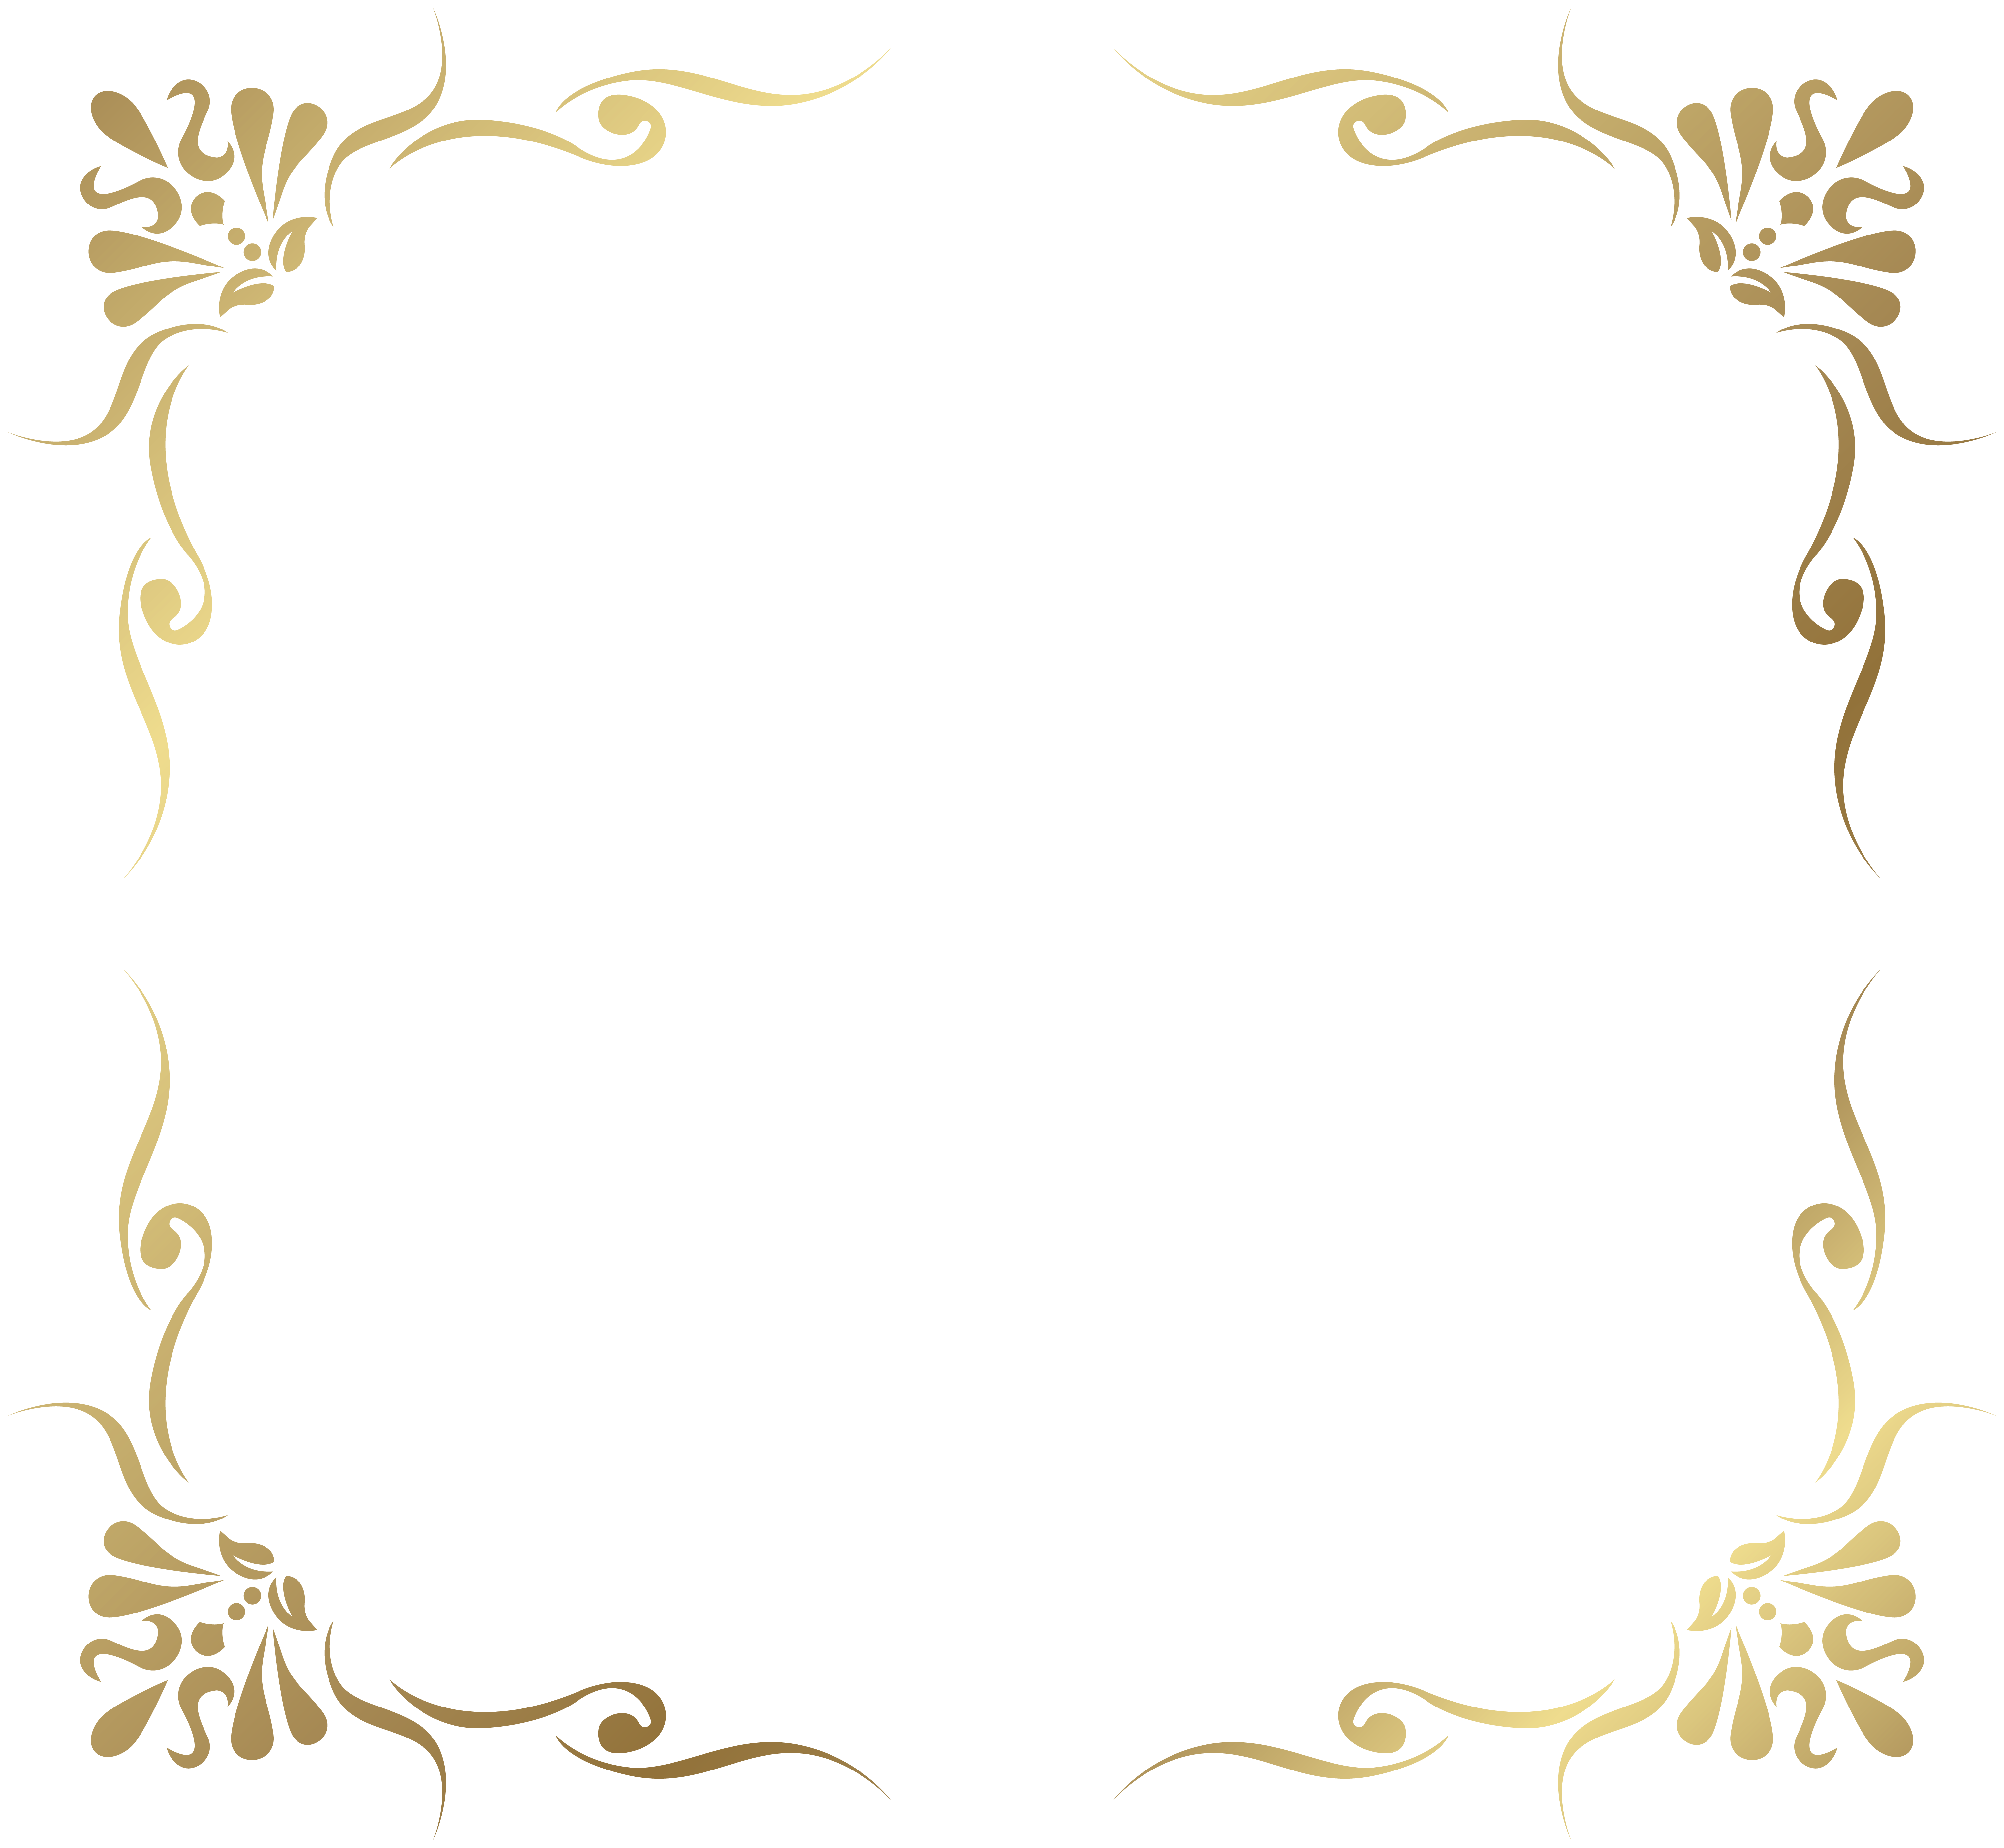 png transparent stock Transparent decorative frame png. Classic clipart country border.